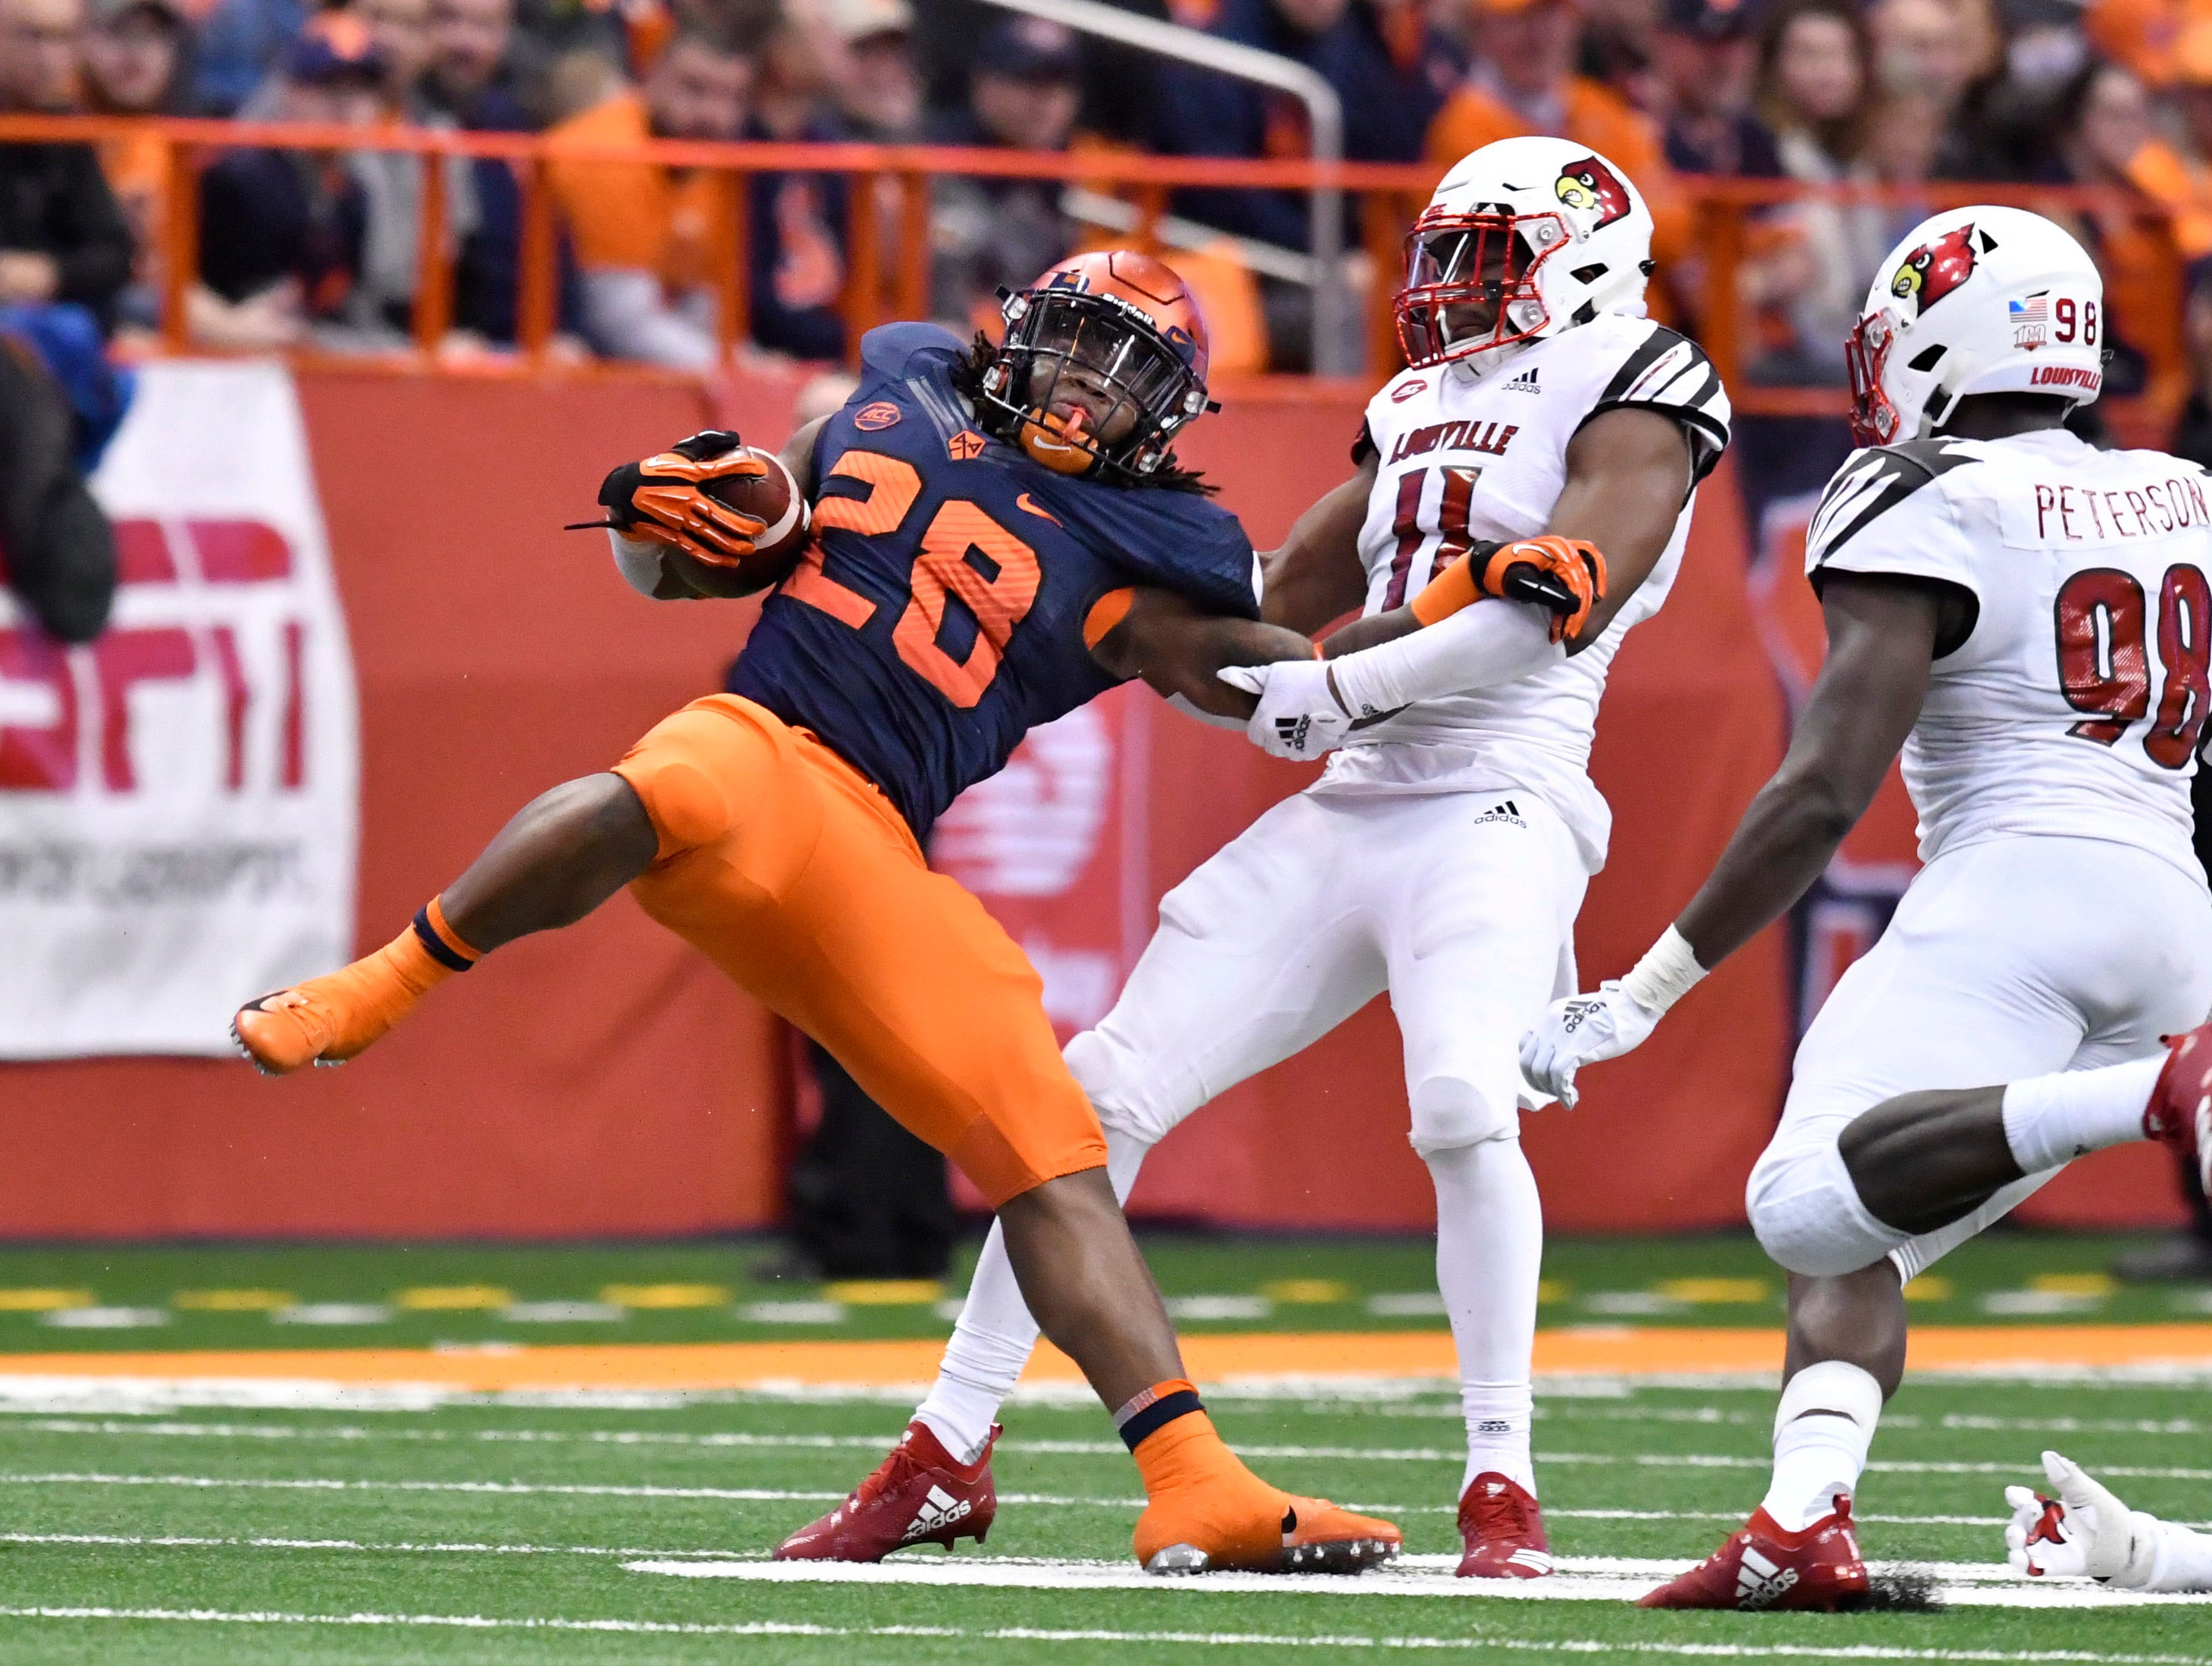 Syracuse Orange running back Jarveon Howard (28) is tackled by Louisville Cardinals safety Dee Smith (11) during the third quarter at the Carrier Dome.